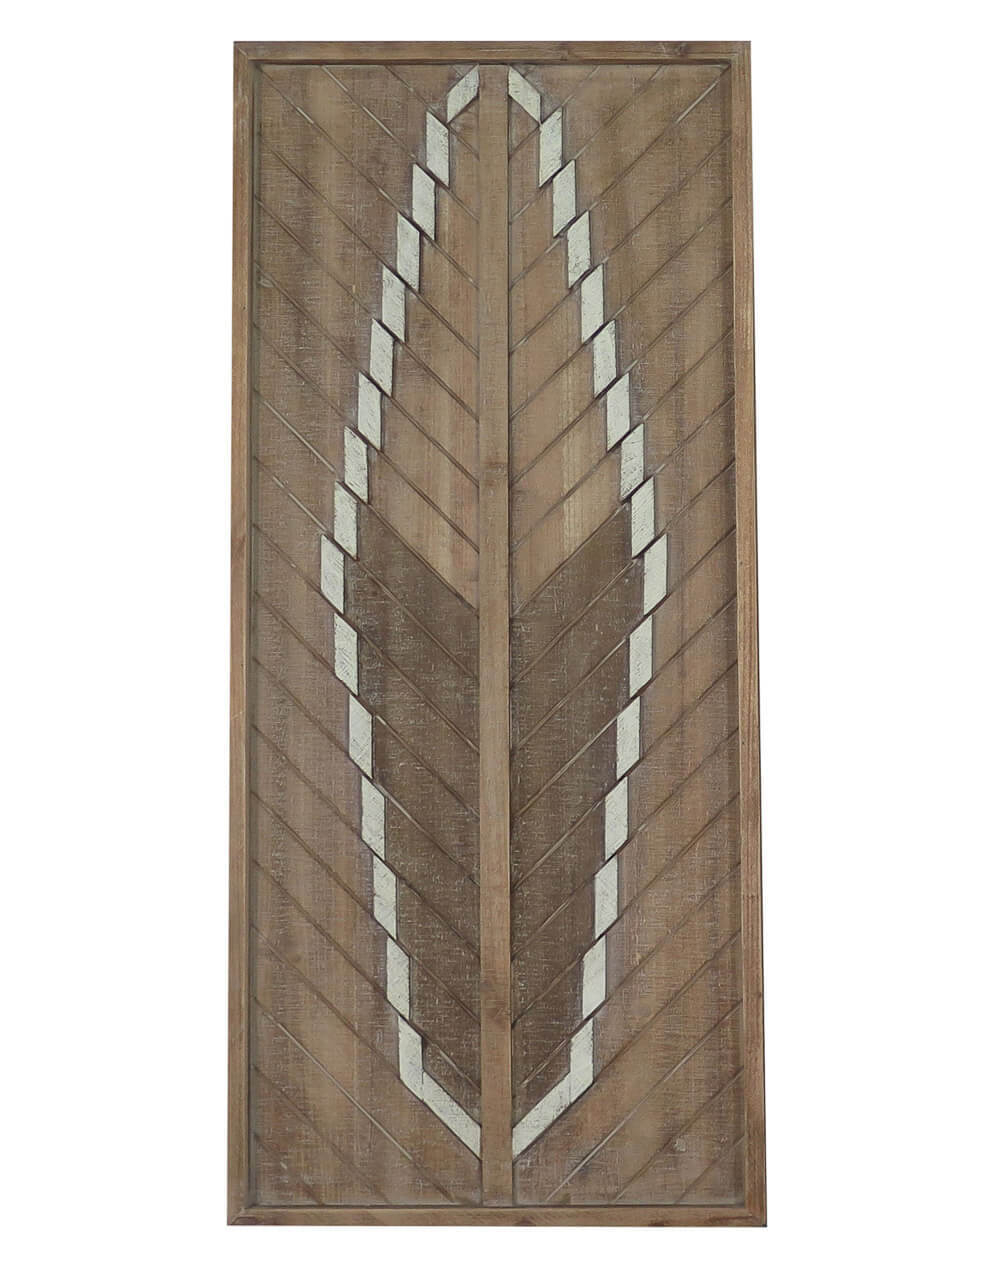 Buy Arrow Feather Detail Large Frame Wall Tribal Art Decor With Regard To Well Known Brown Metal Tribal Arrow Wall Decor (View 17 of 20)